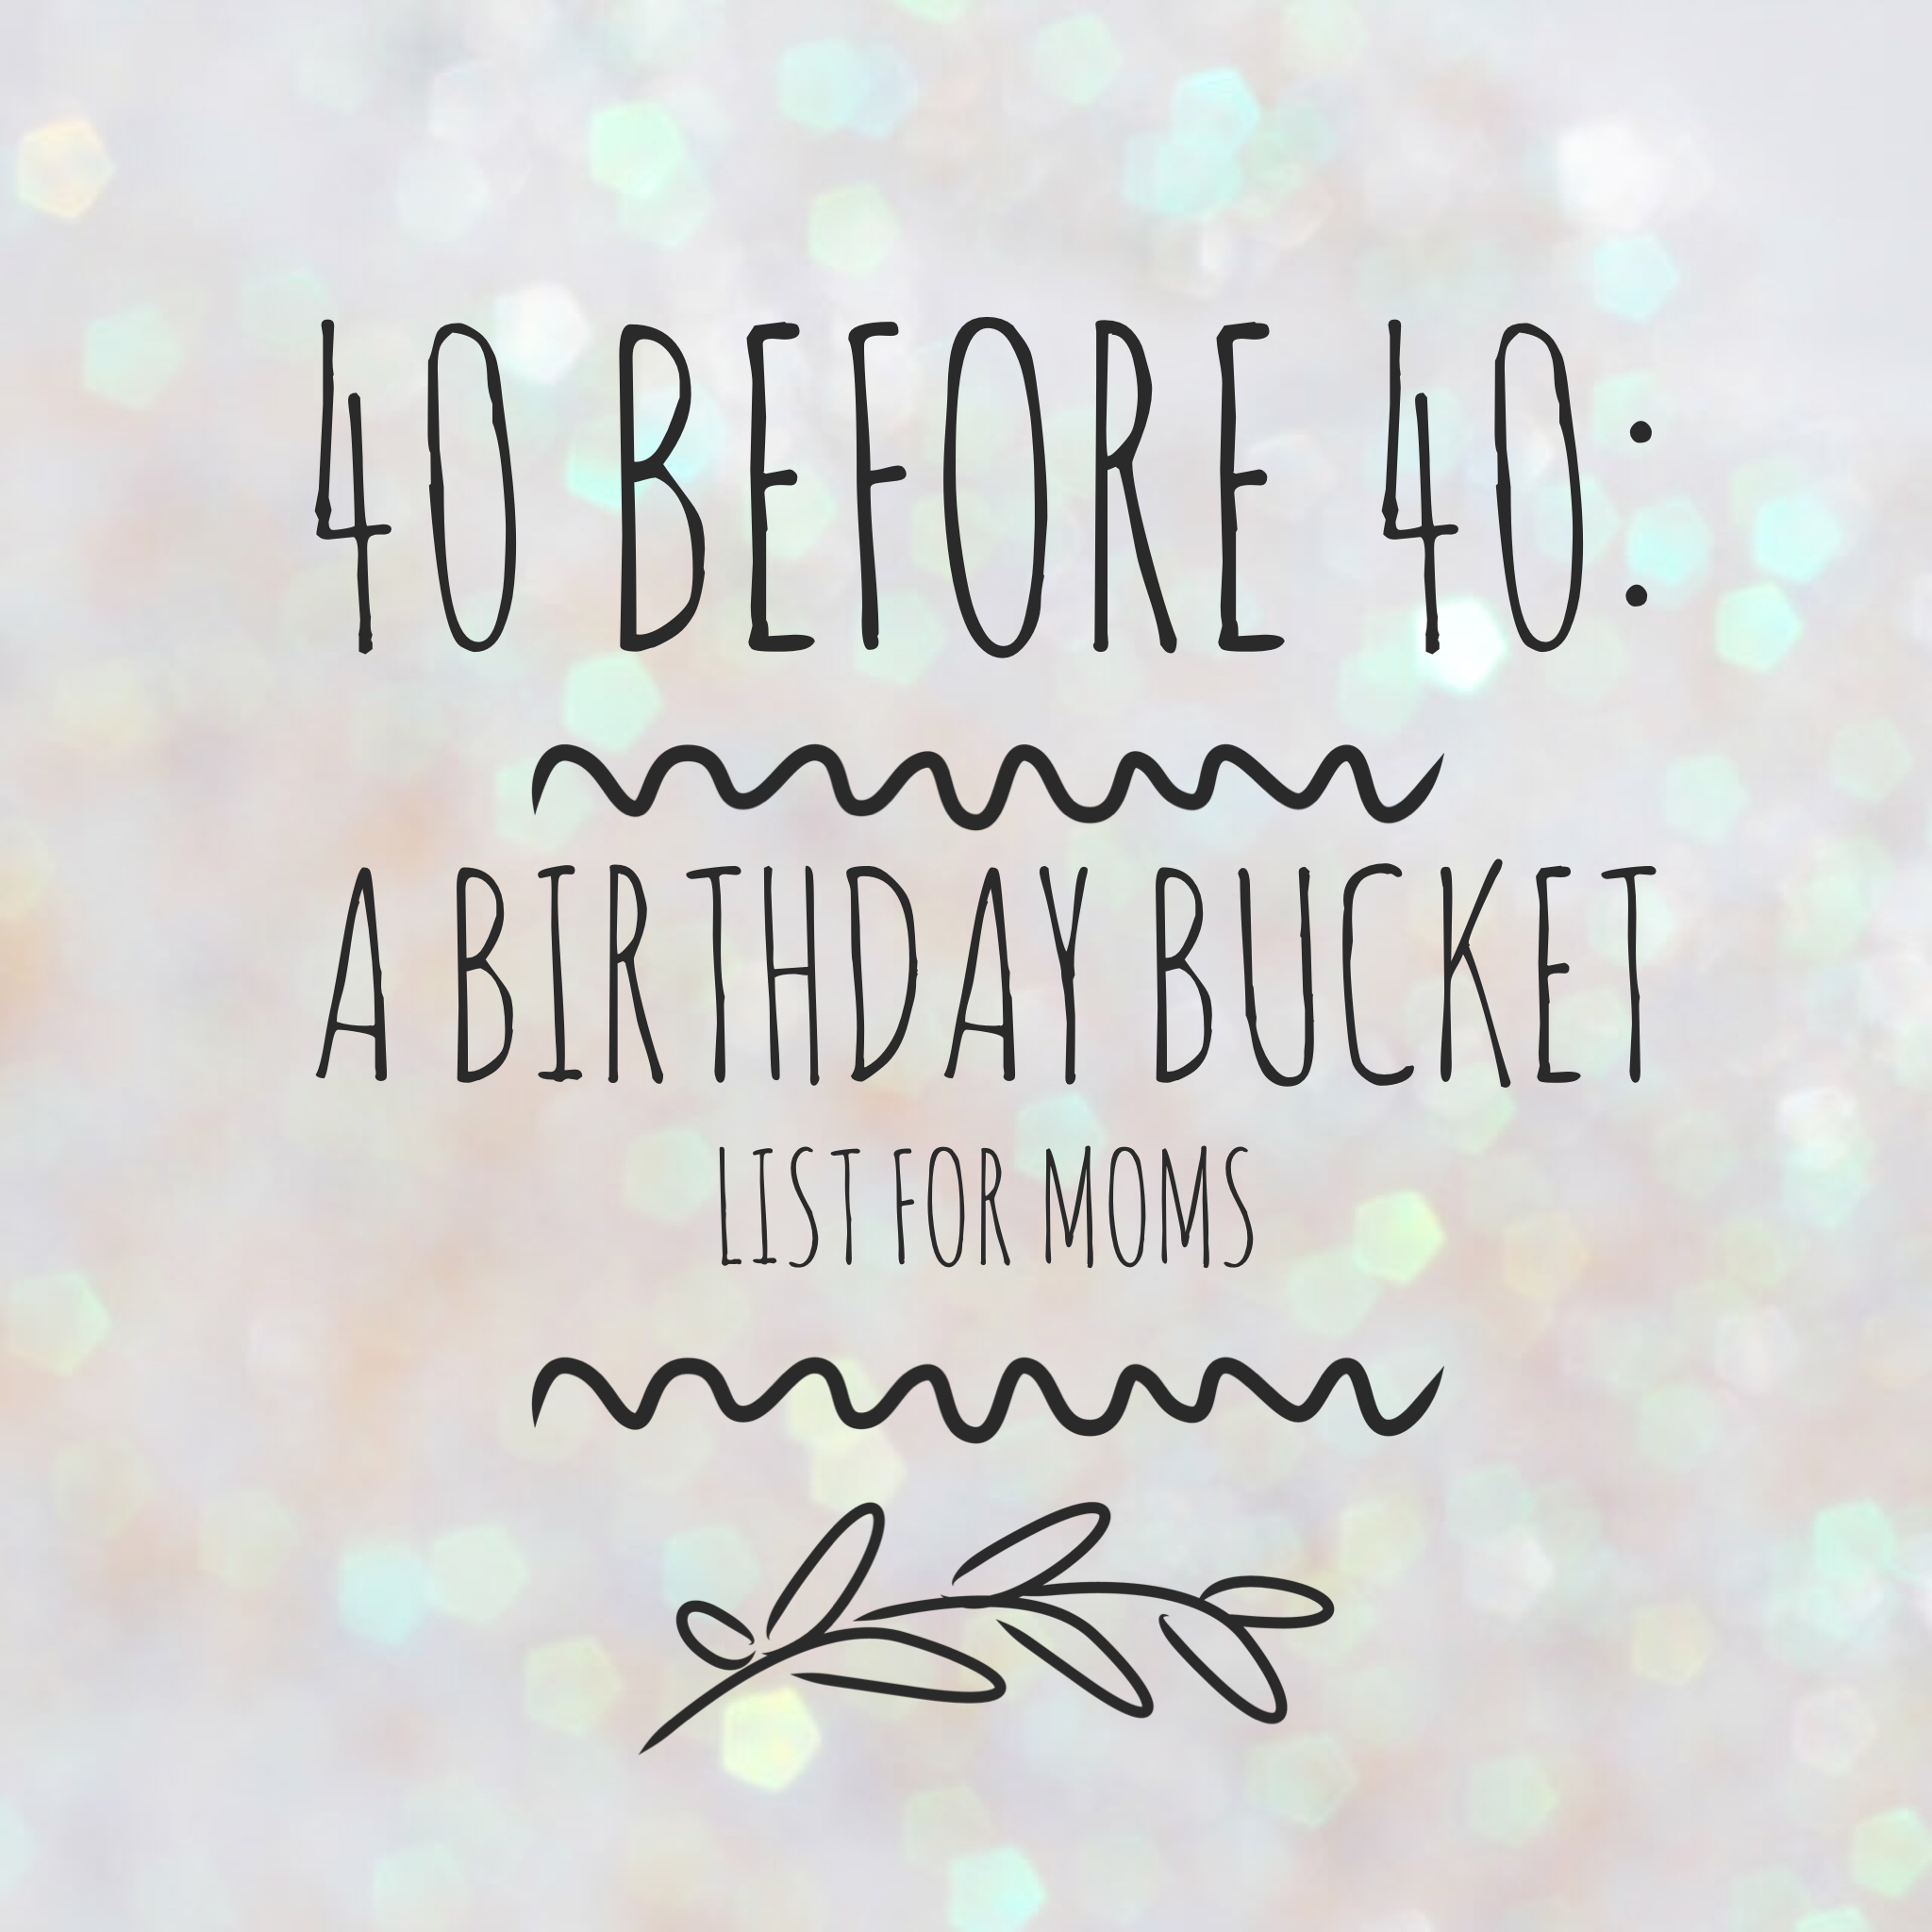 40 Before 40: A Birthday Bucket List For Mom